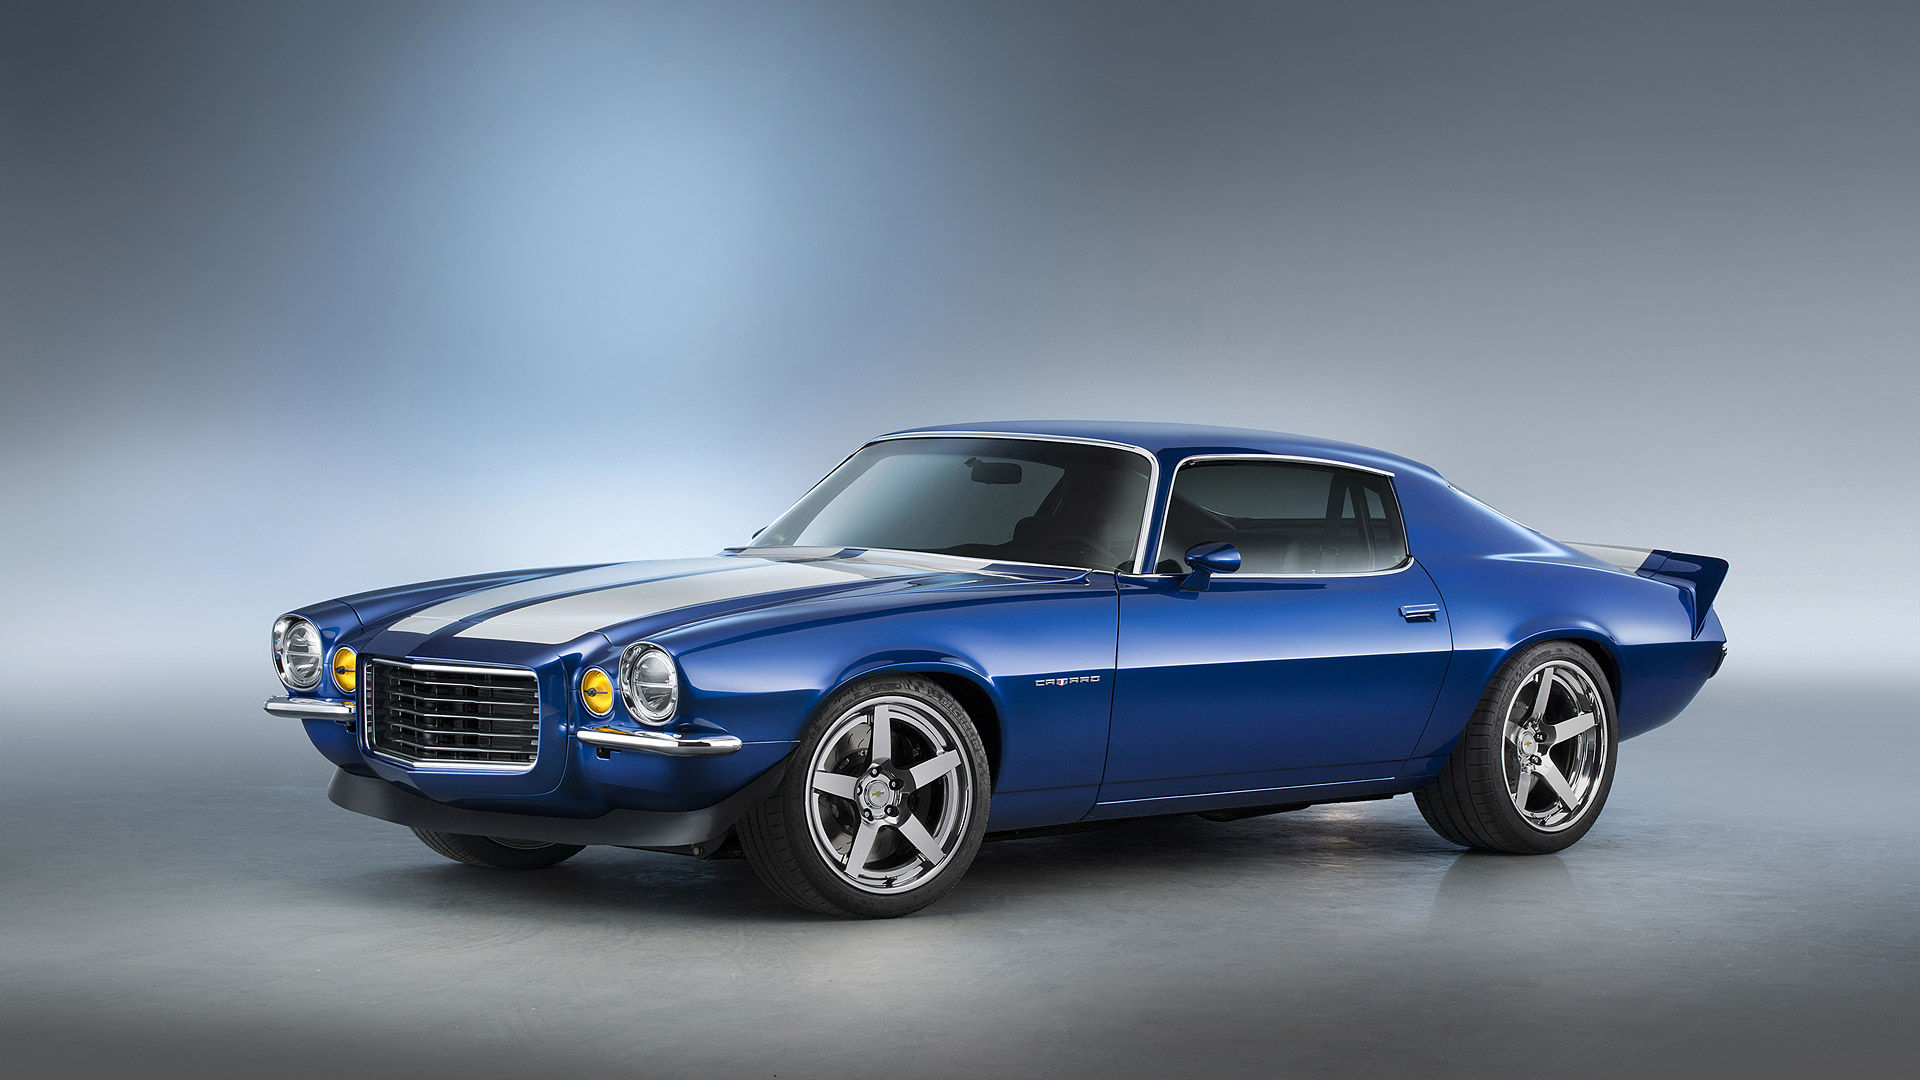 2015 Chevrolet 1970 Camaro RS Supercharged LT4 Concept